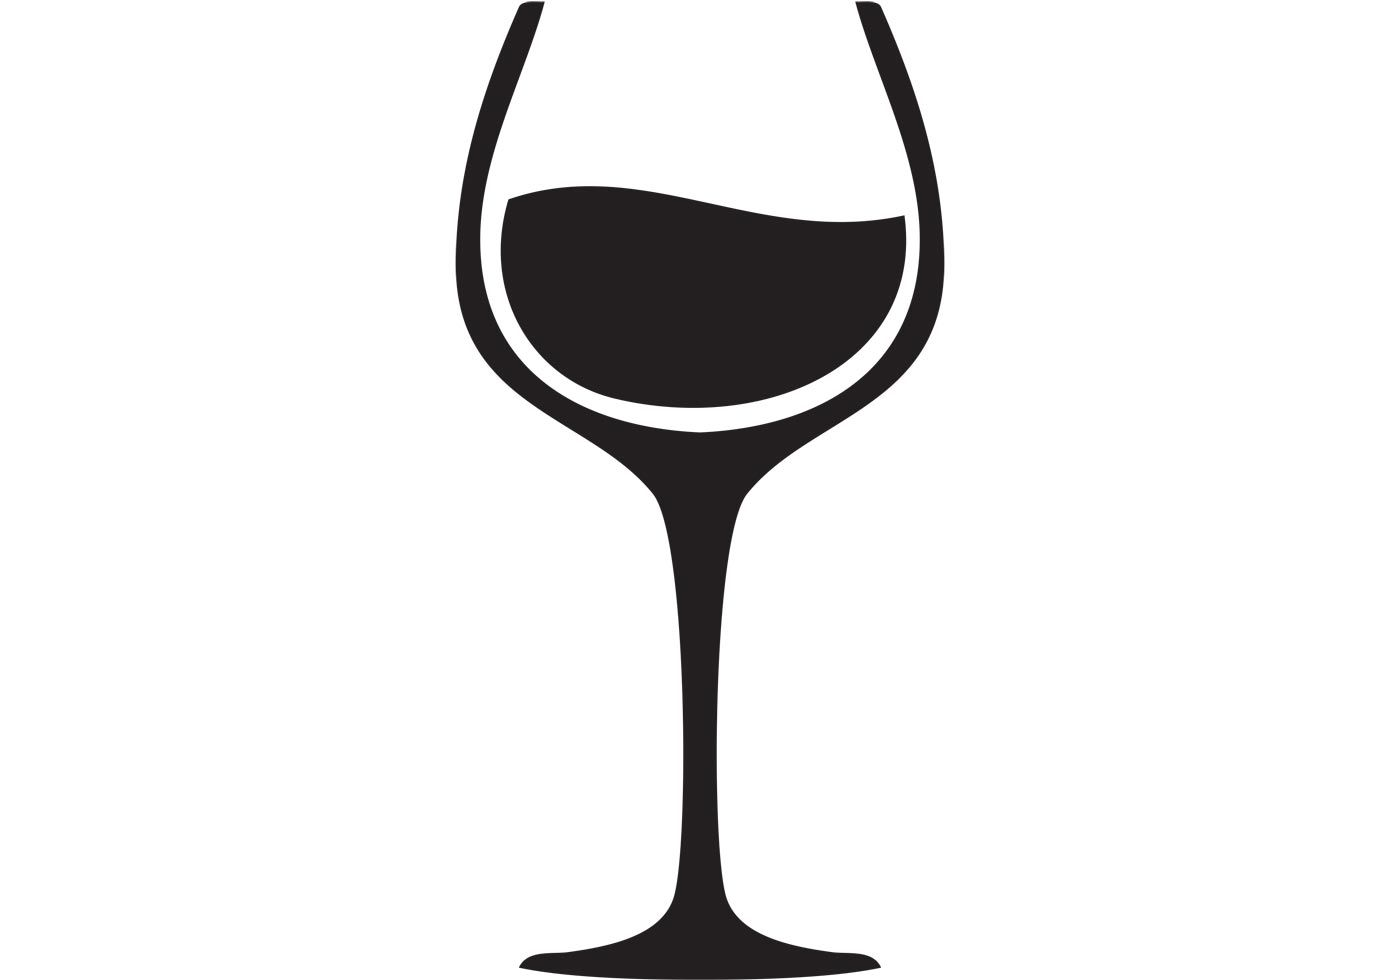 1400x980 New Wine Glass Vector. This Wine Glass Vector Is Great For A Drink